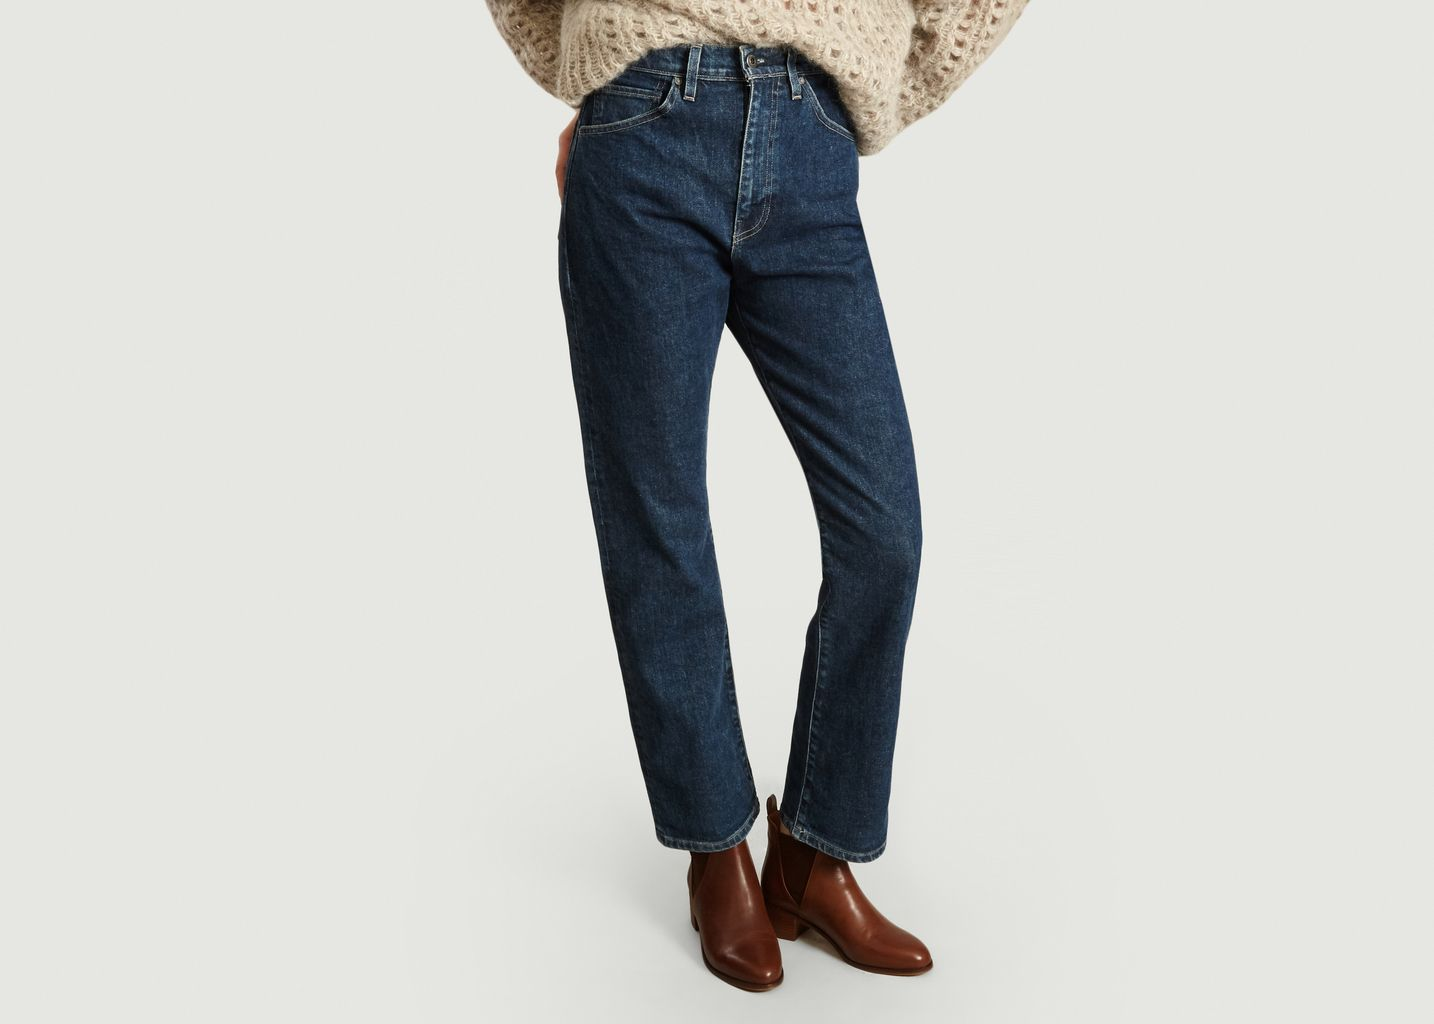 Jean Droit 701 - Levi's Made and Crafted